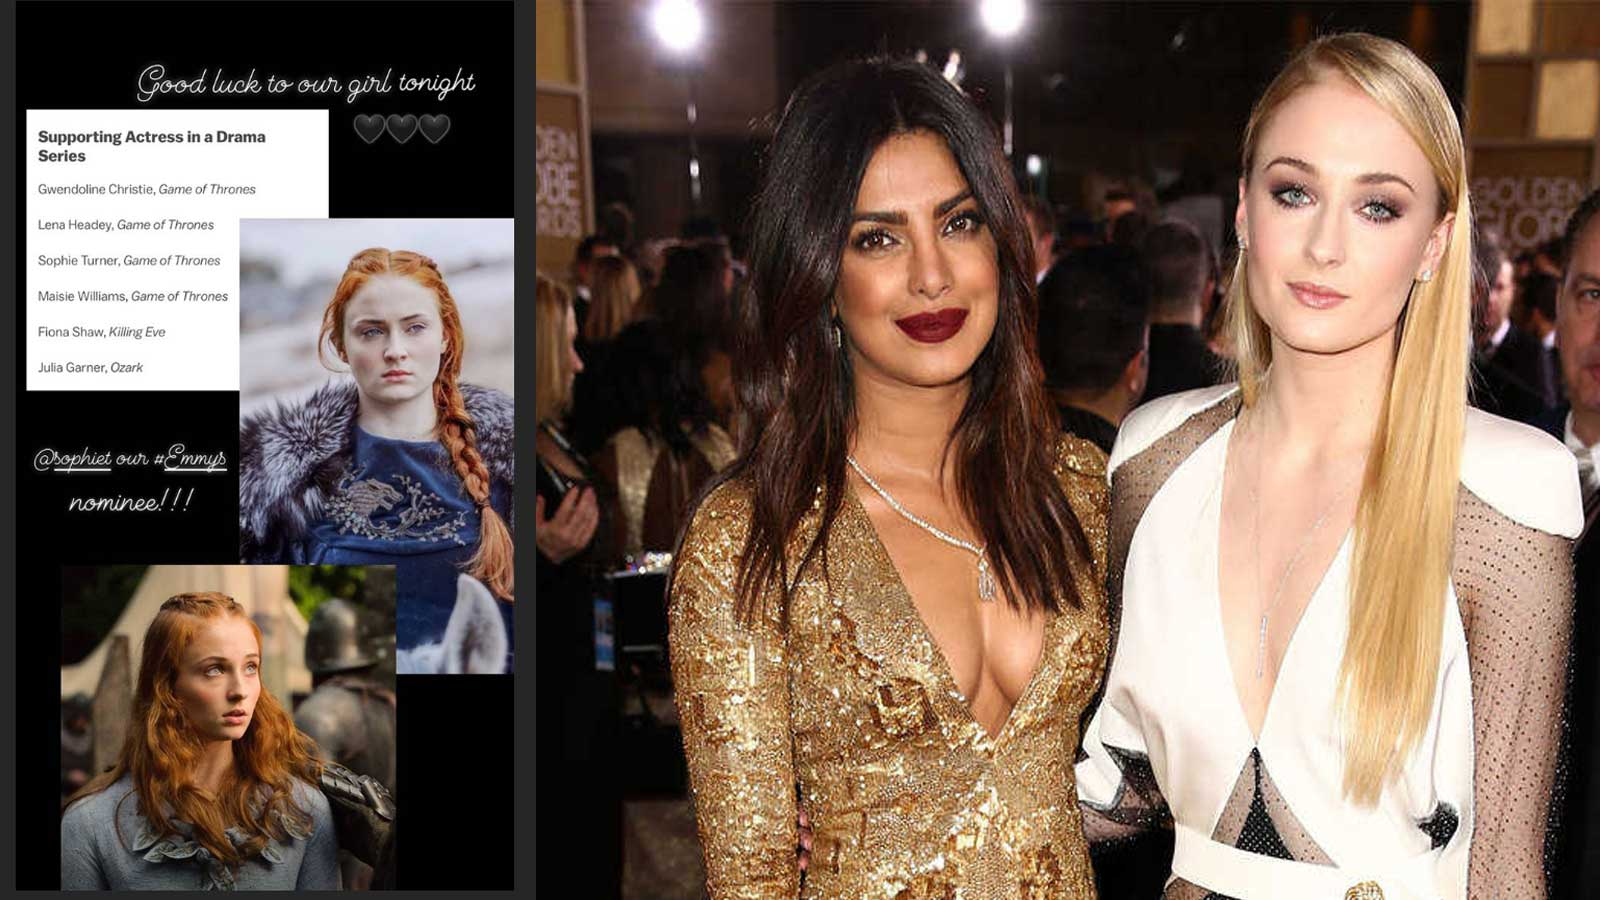 priyanka-chopra-sends-love-to-sister-in-law-sophie-turner-all-the-way-from-india-for-her-emmy-nomination